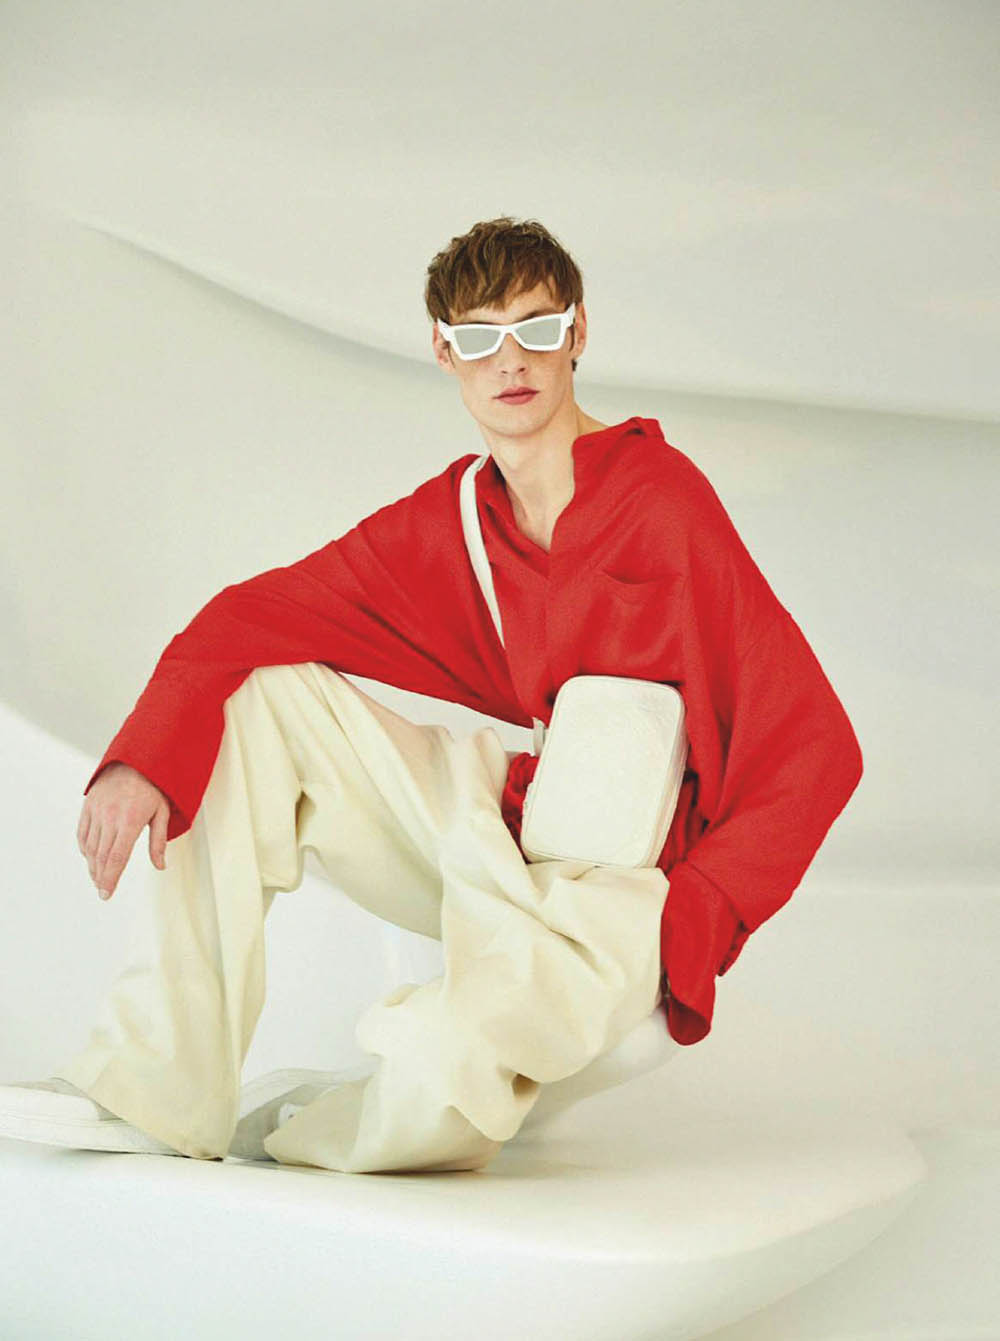 Roberto Sipos by Pablo Saez for Esquire Spain May 2019